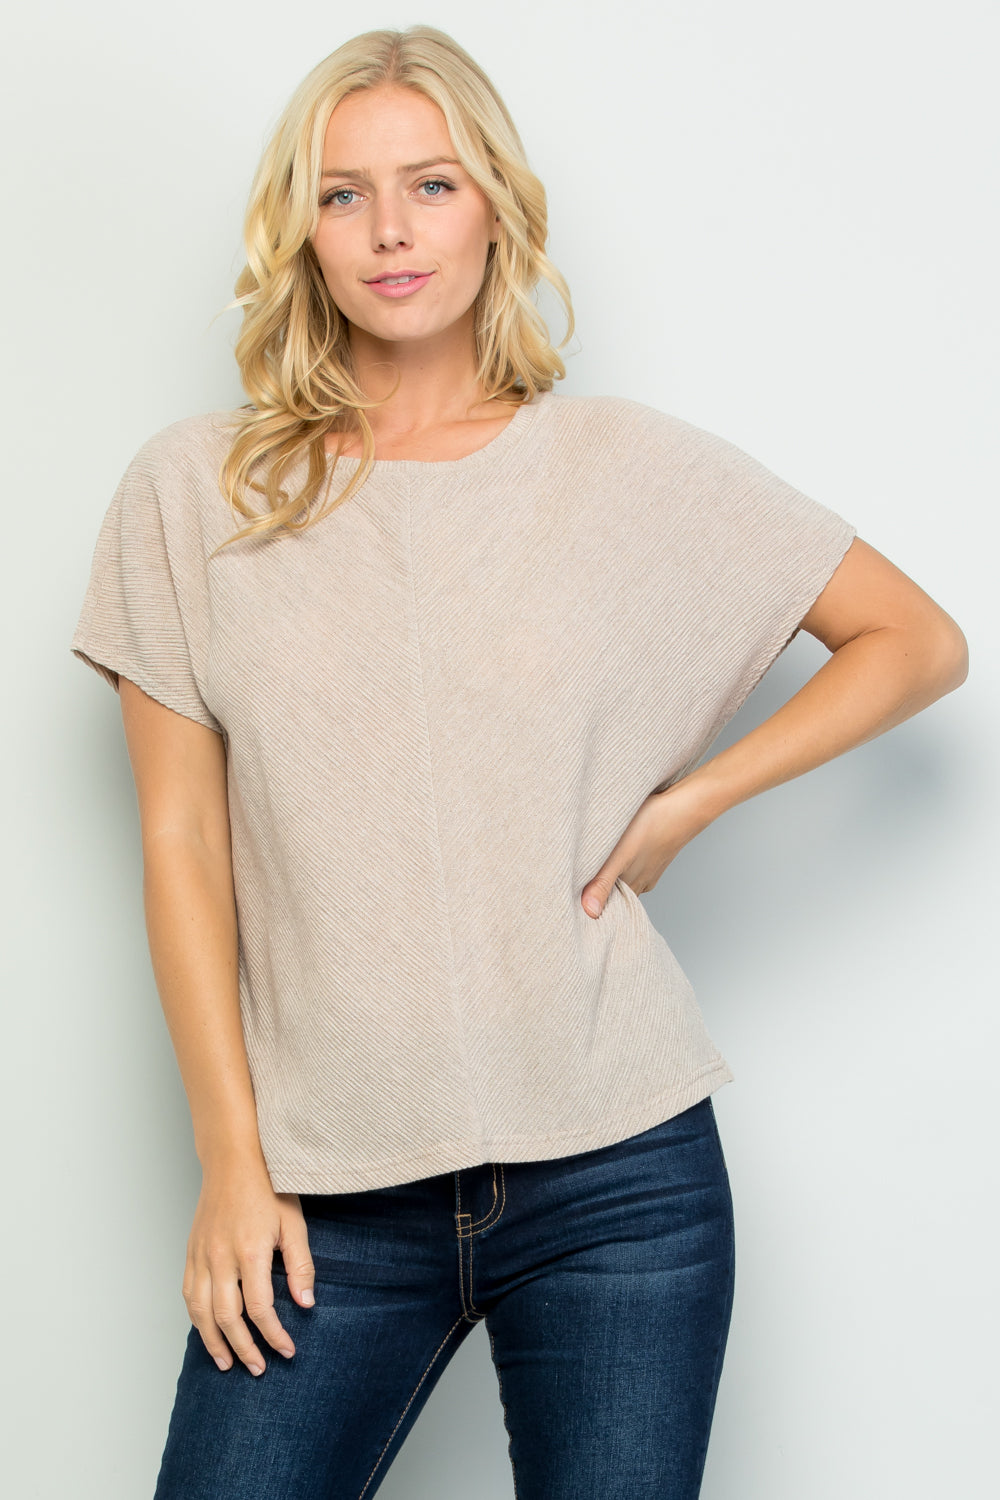 T2705 Pleated Detail Loose Knit Jersey Top